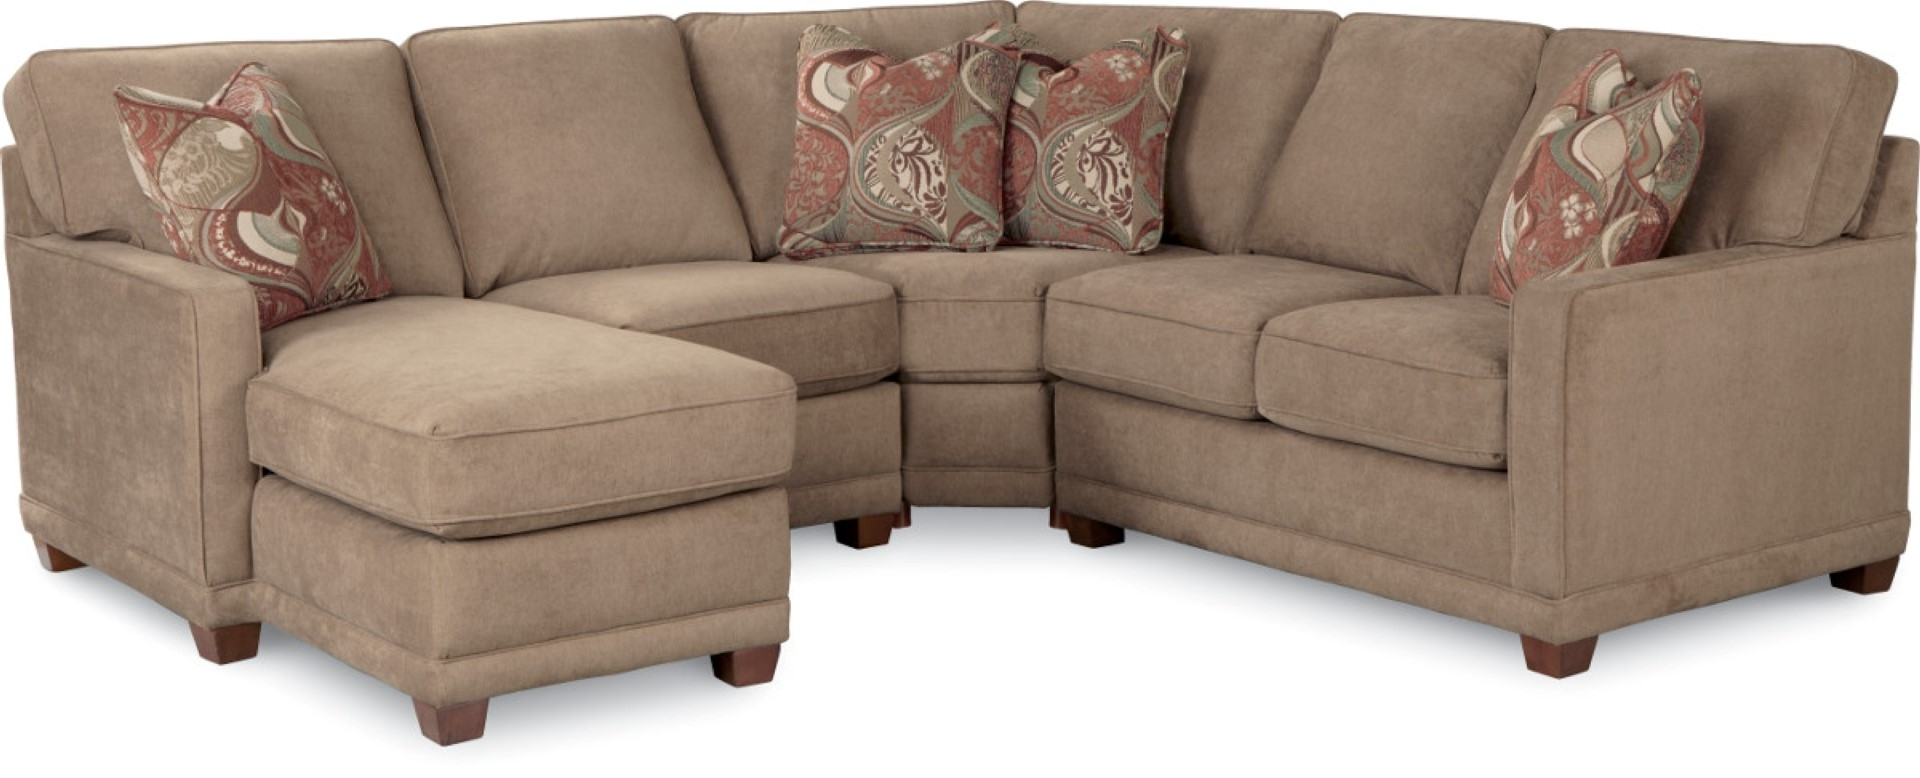 Kennedy Sectional Sofa – Town & Country Furniture With Regard To Well Known La Z Boy Sectional Sofas (Gallery 2 of 20)